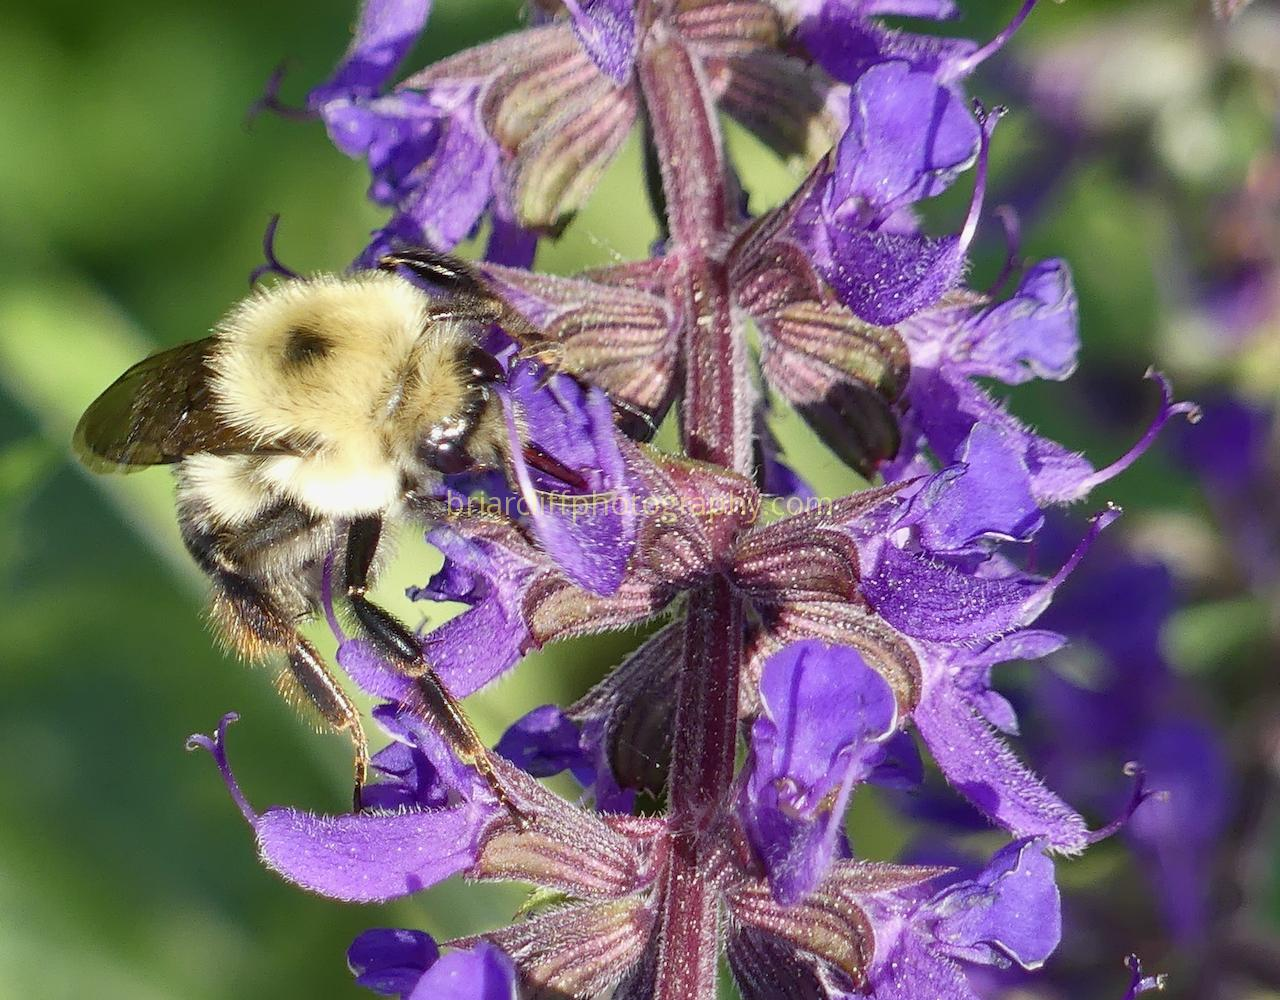 Bumble bee on salvia plant